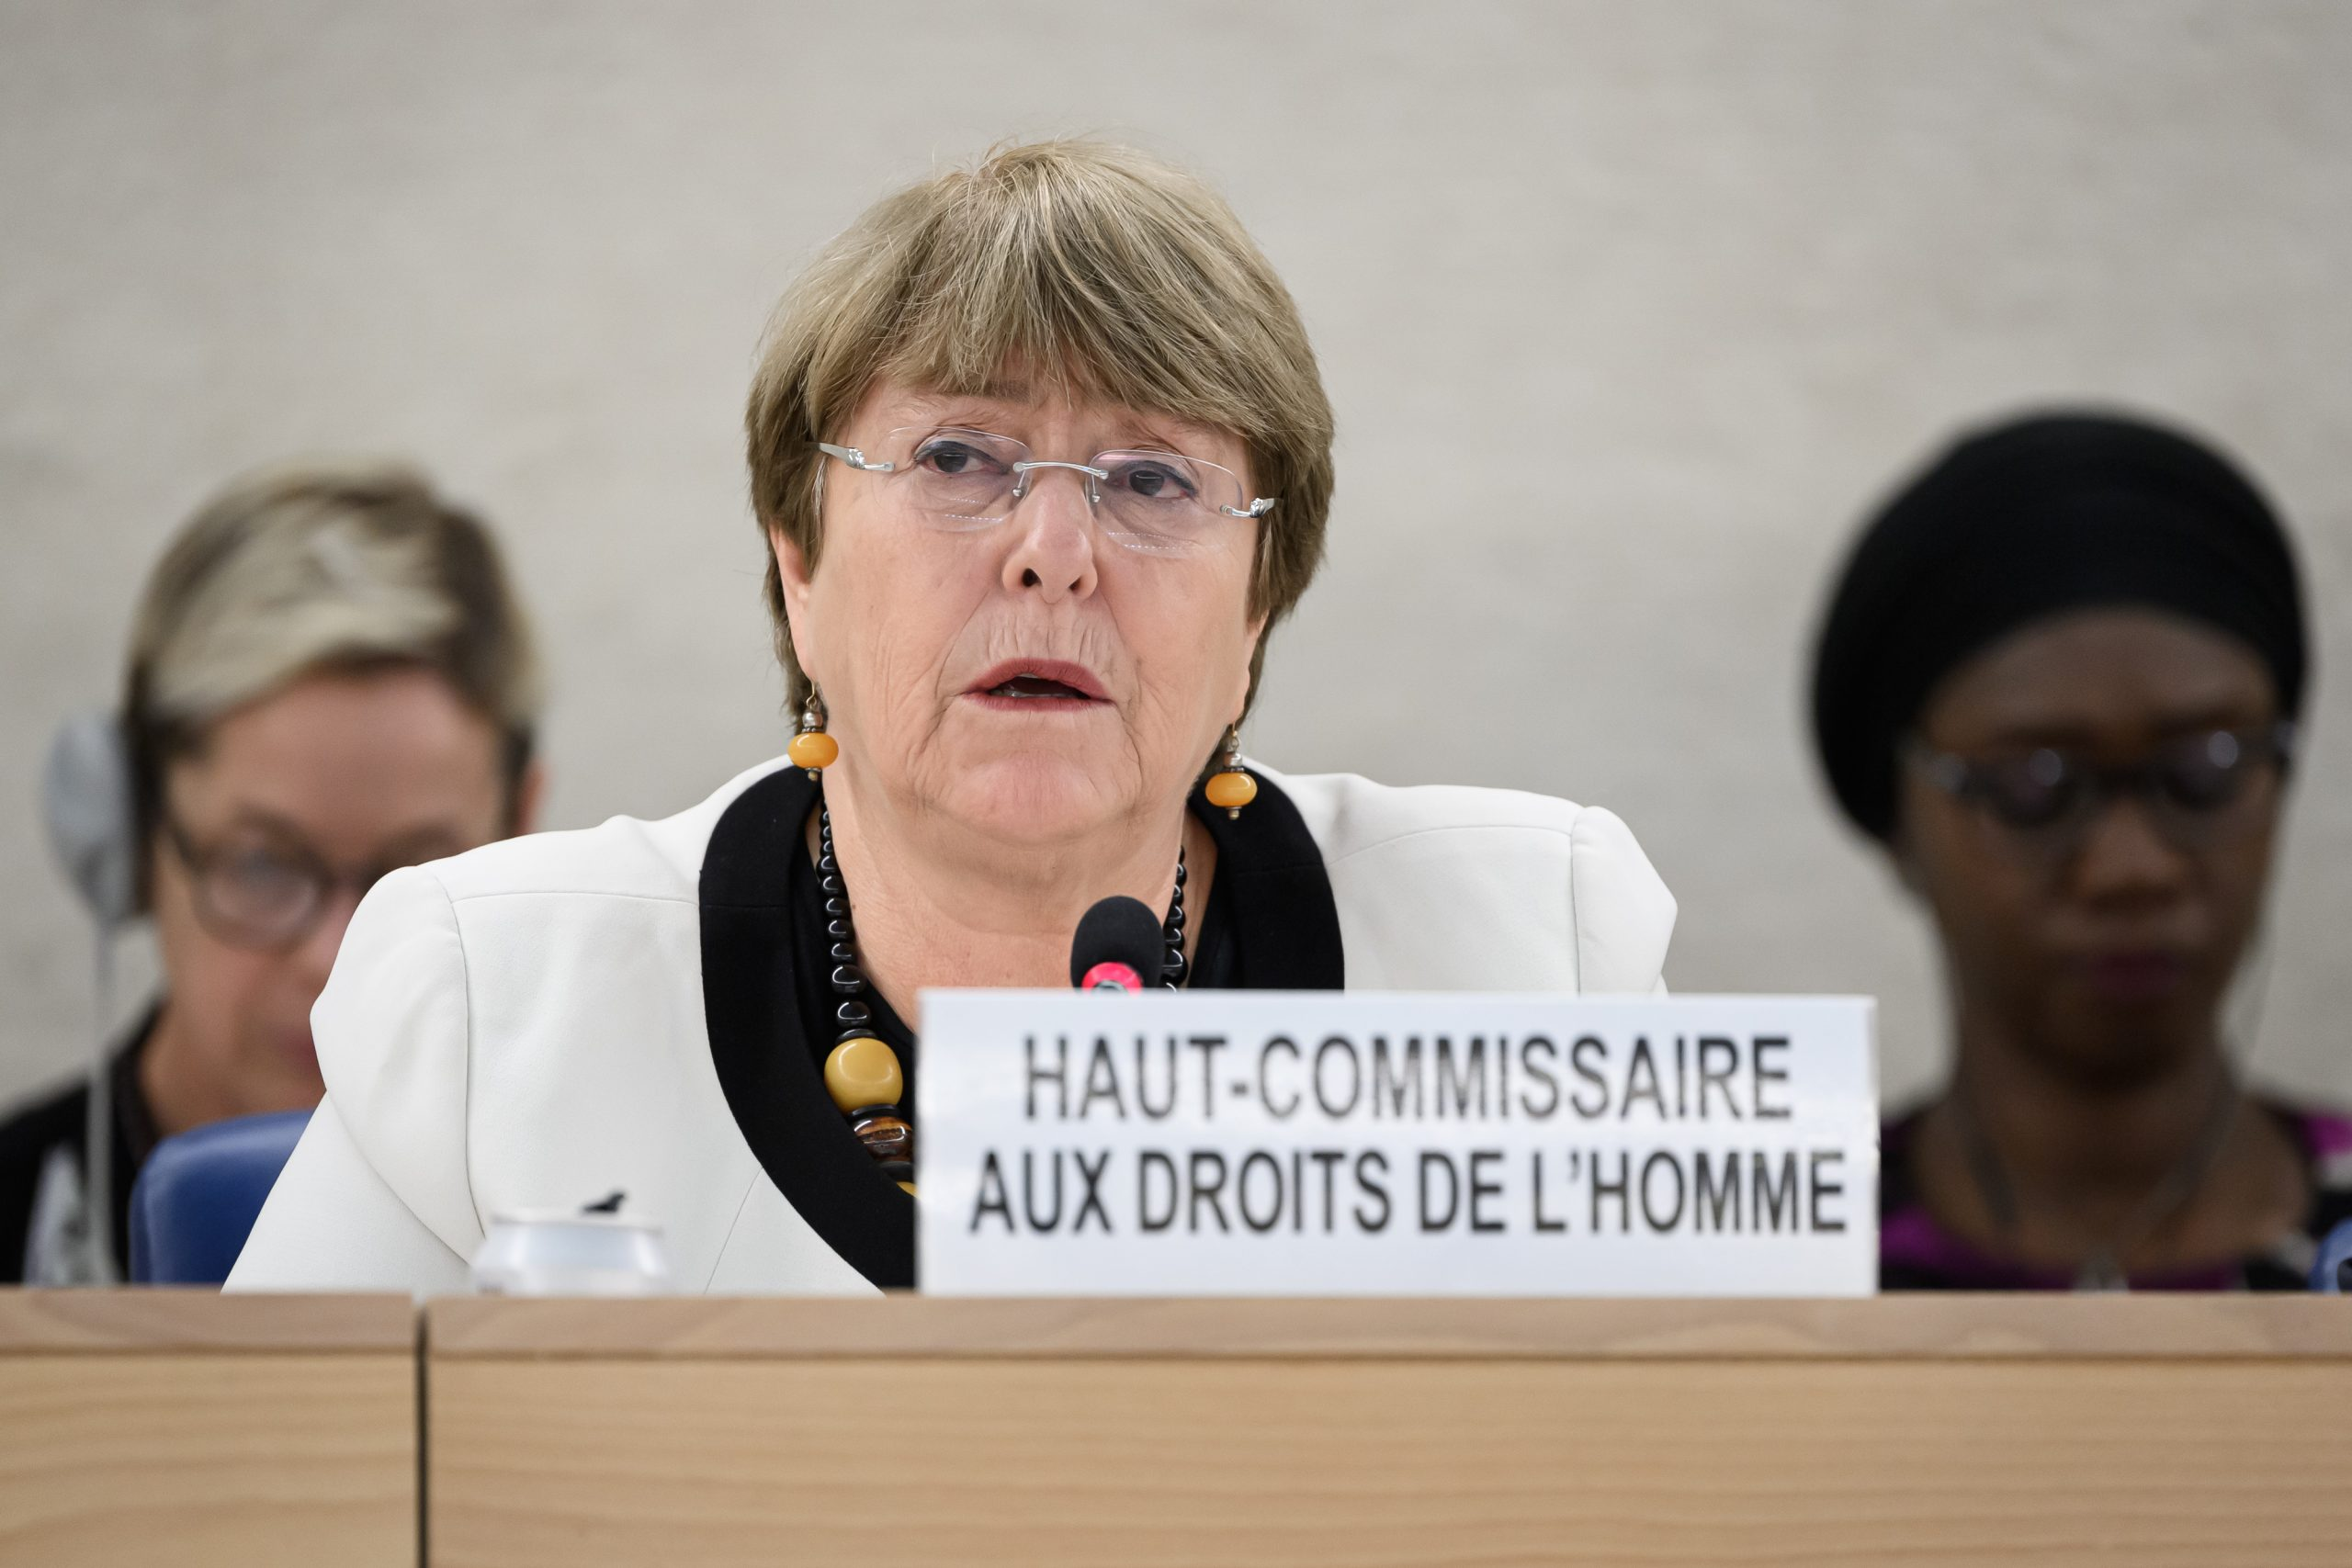 UN High Commissioner for Human Rights Michelle Bachelet attends an update on the situation of human rights in Venezuela at the United Nations Offices in Geneva on December 18, 2019. (Photo by Fabrice COFFRINI / AFP)